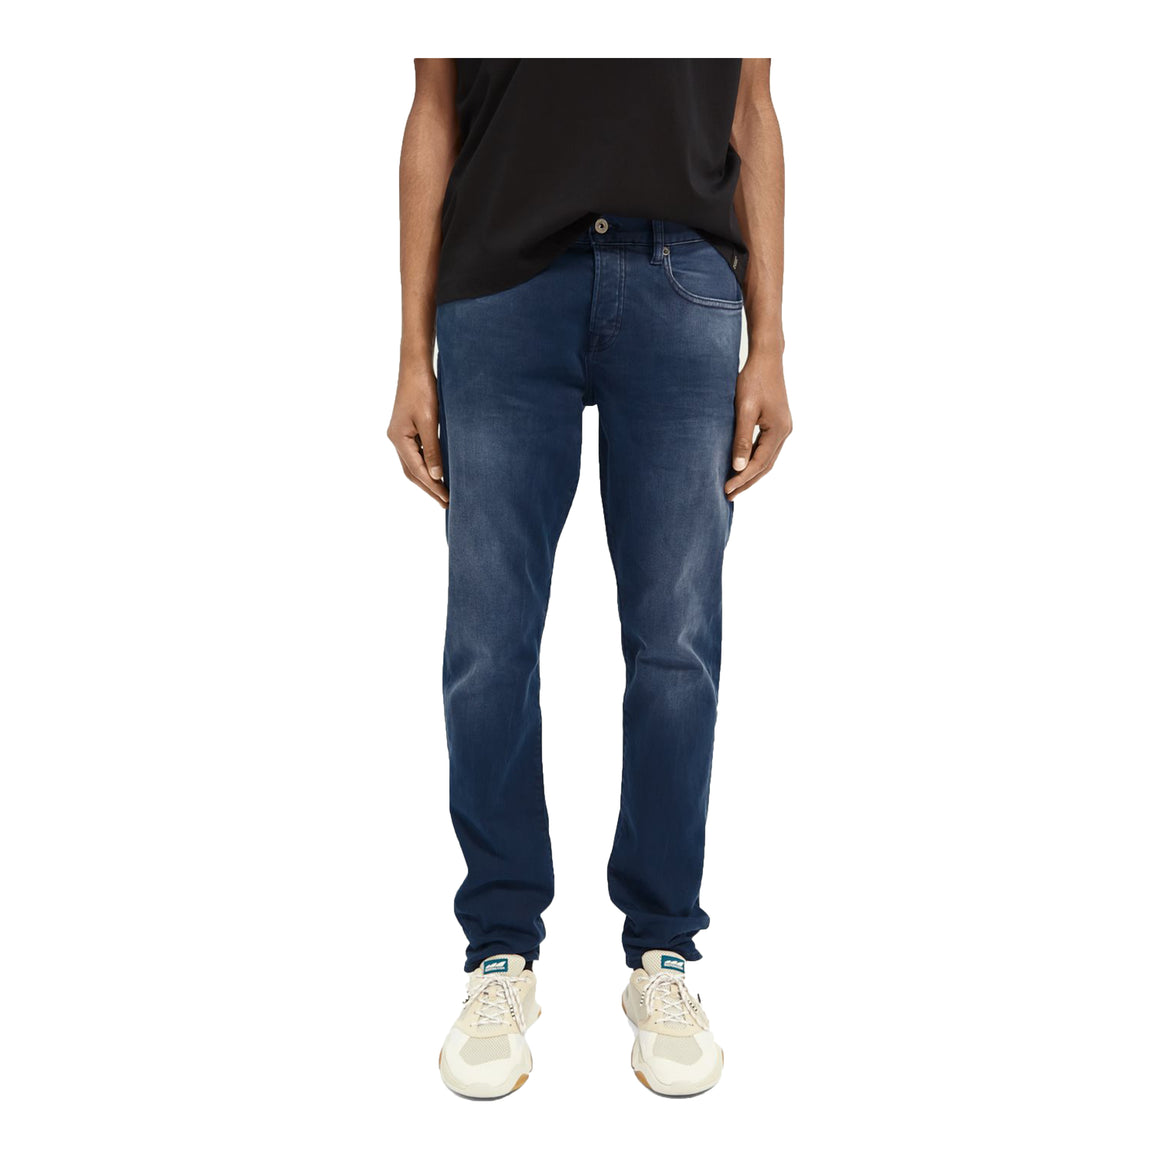 Slim Fit Ralston Jean for Men in Indigo